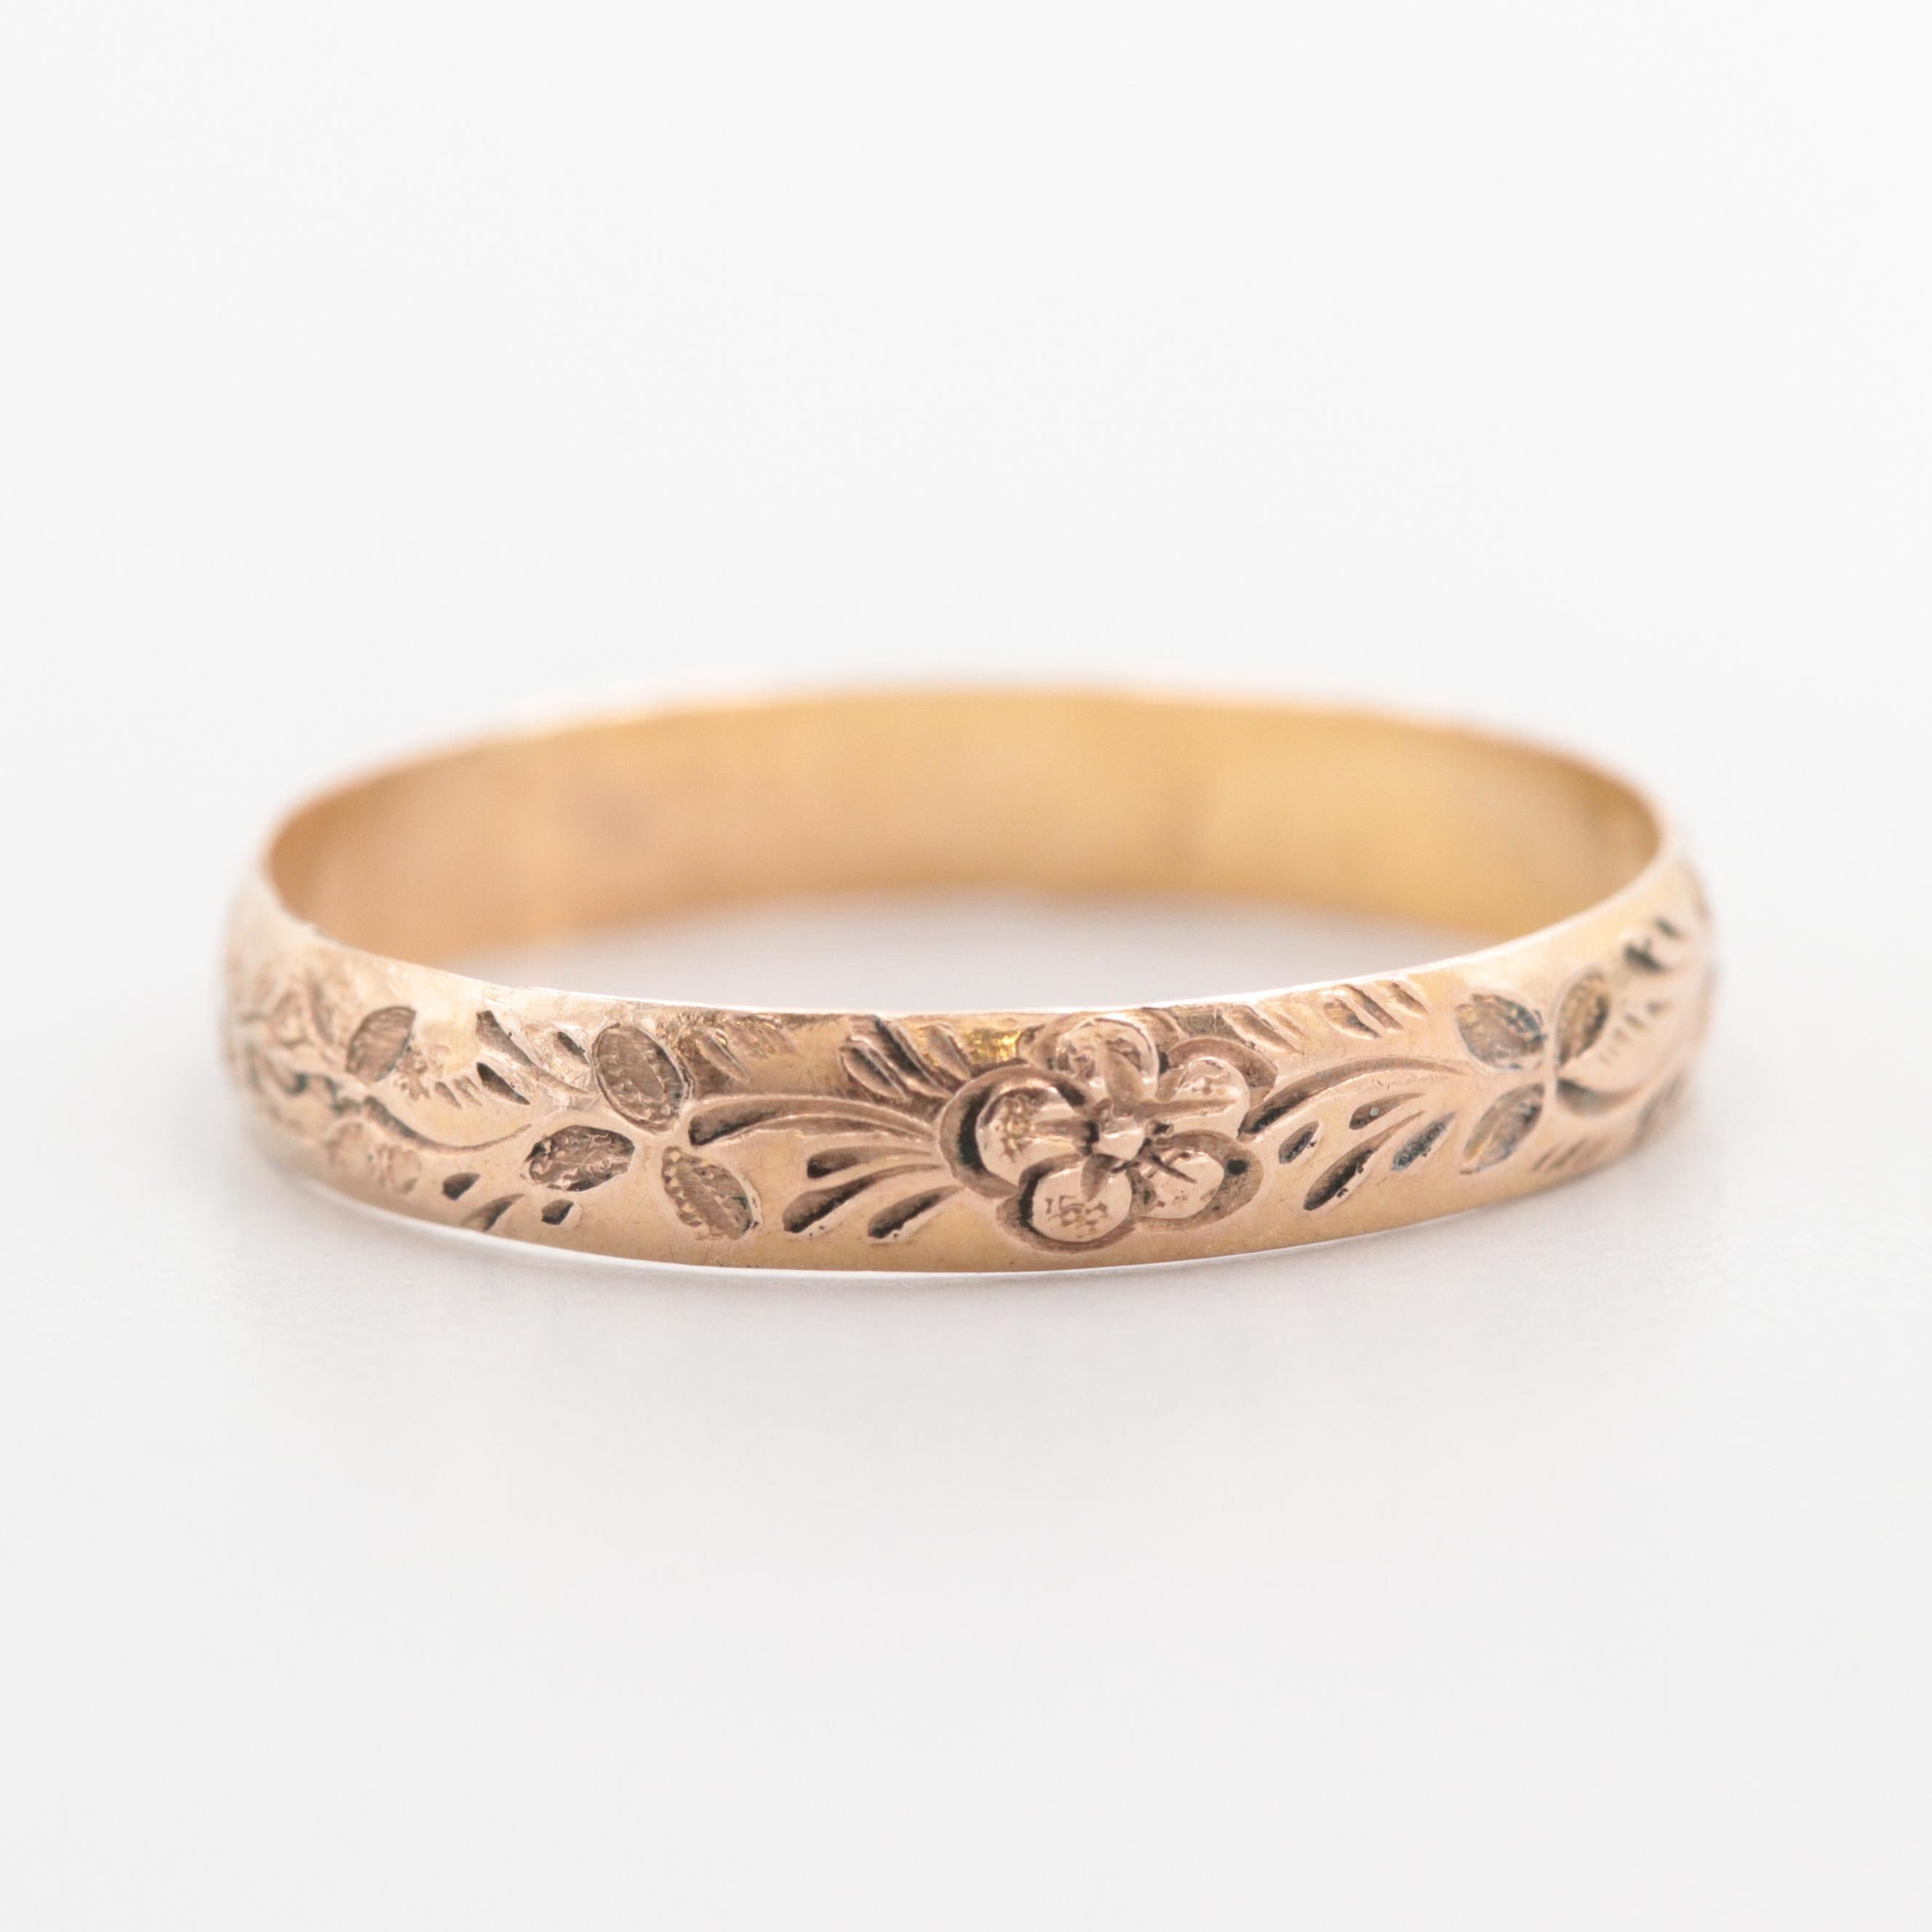 Victorian 10K Yellow Gold Etched Floral Band